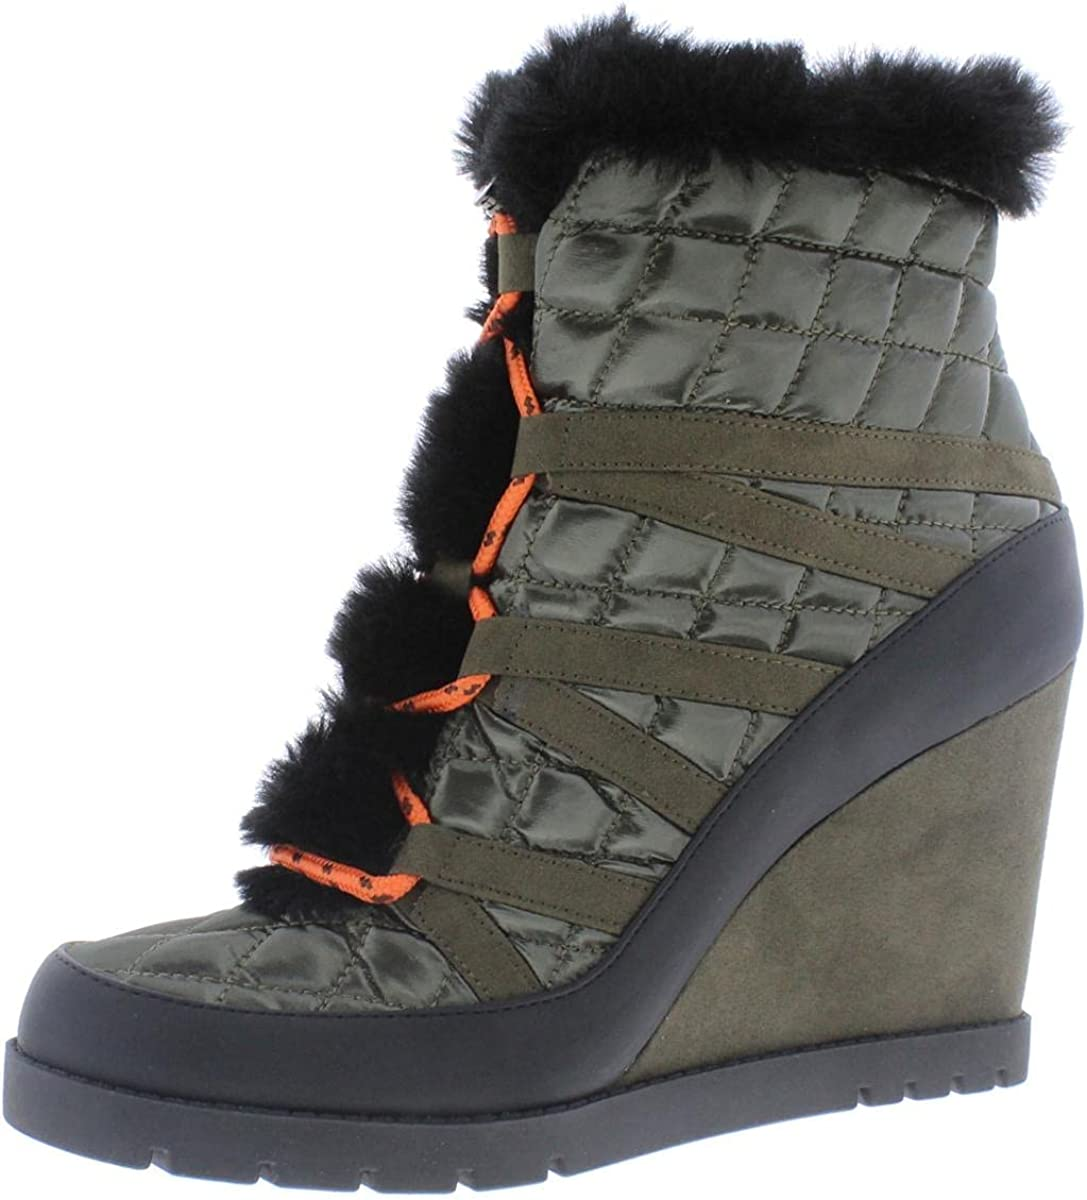 Jessica Simpson Womens Brixel Faux Ankle Boots Outstanding Jacksonville Mall Fur Wedge